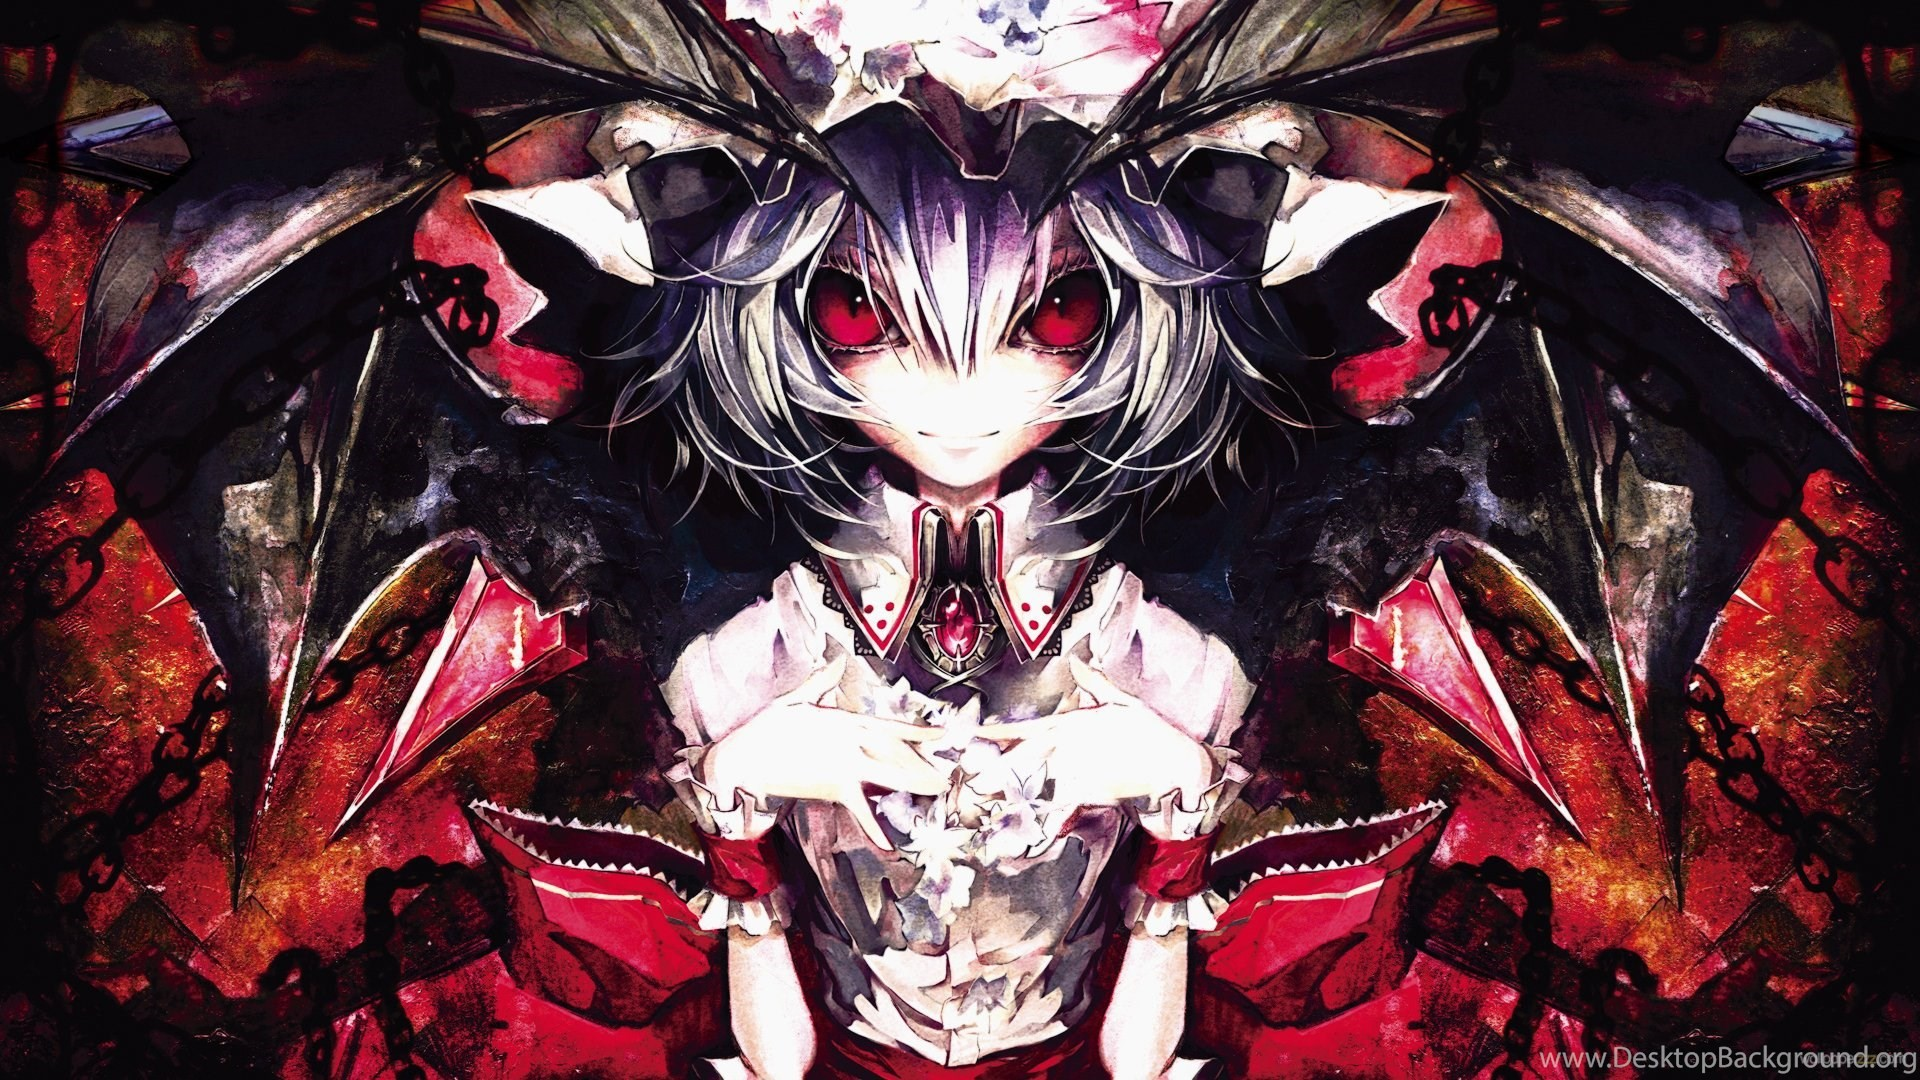 Gothic Anime Wallpaper (69+ images)